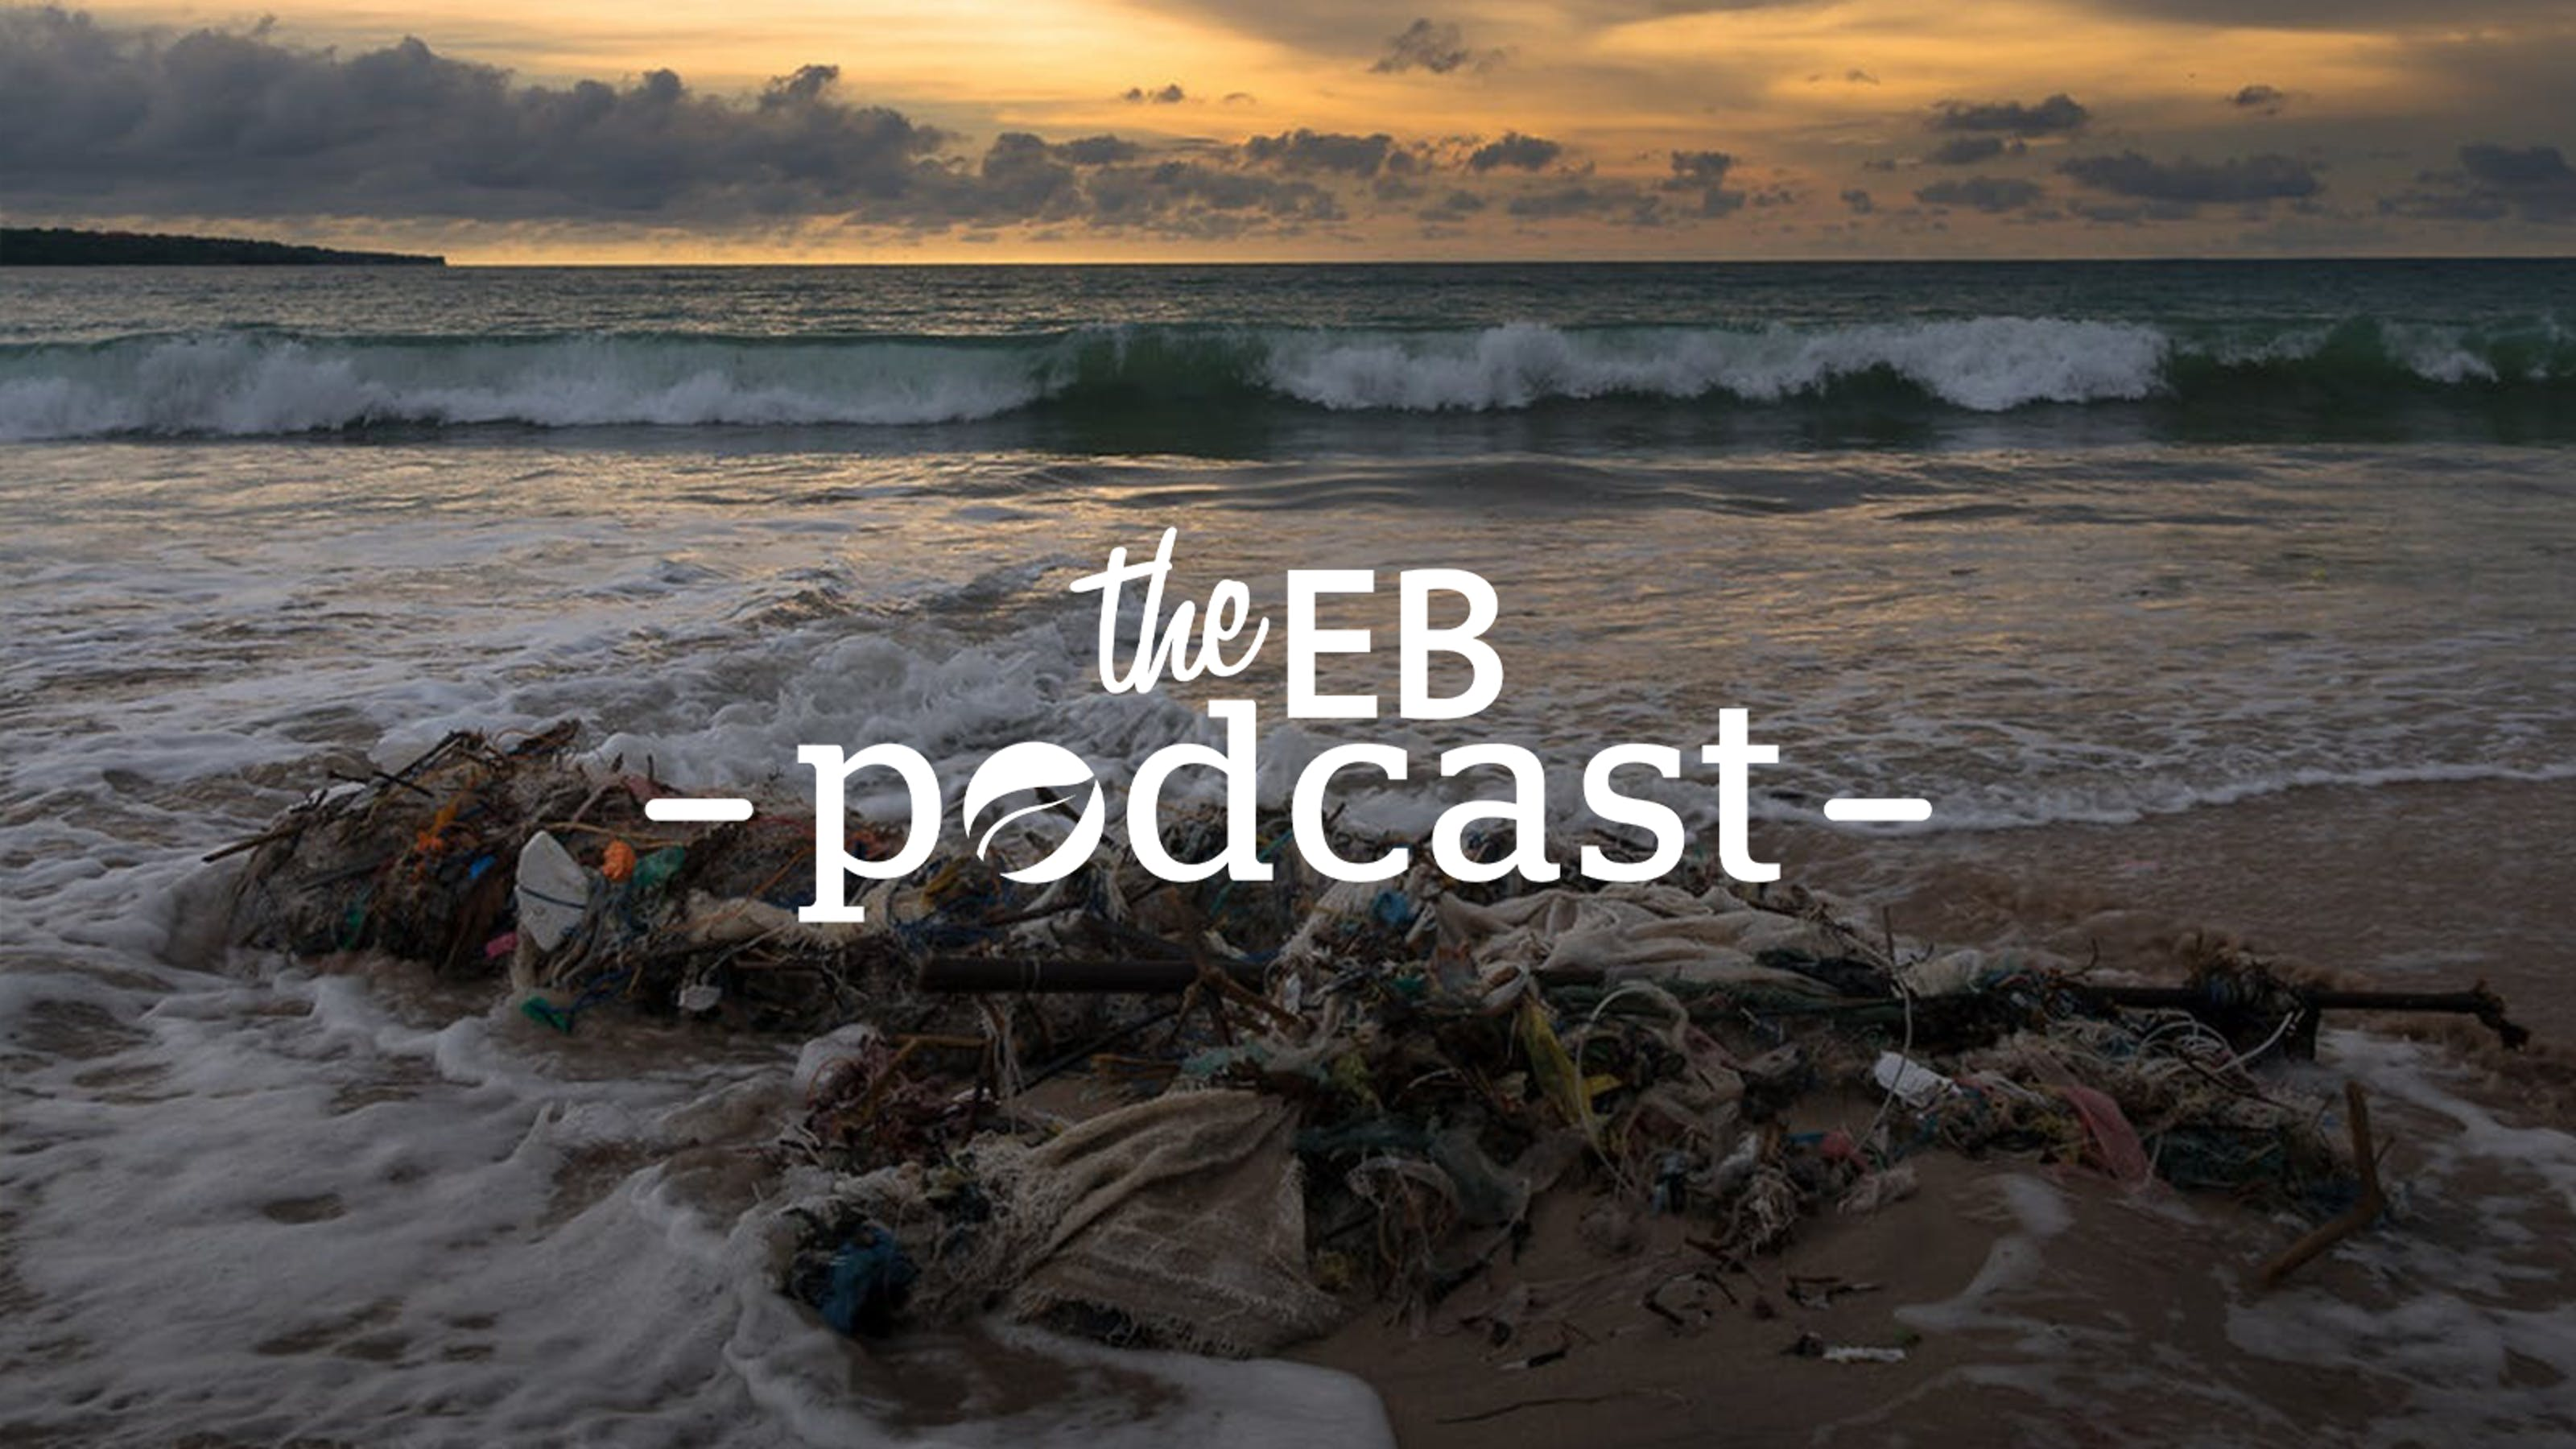 The EB Podcast talked to Rob Kaplan